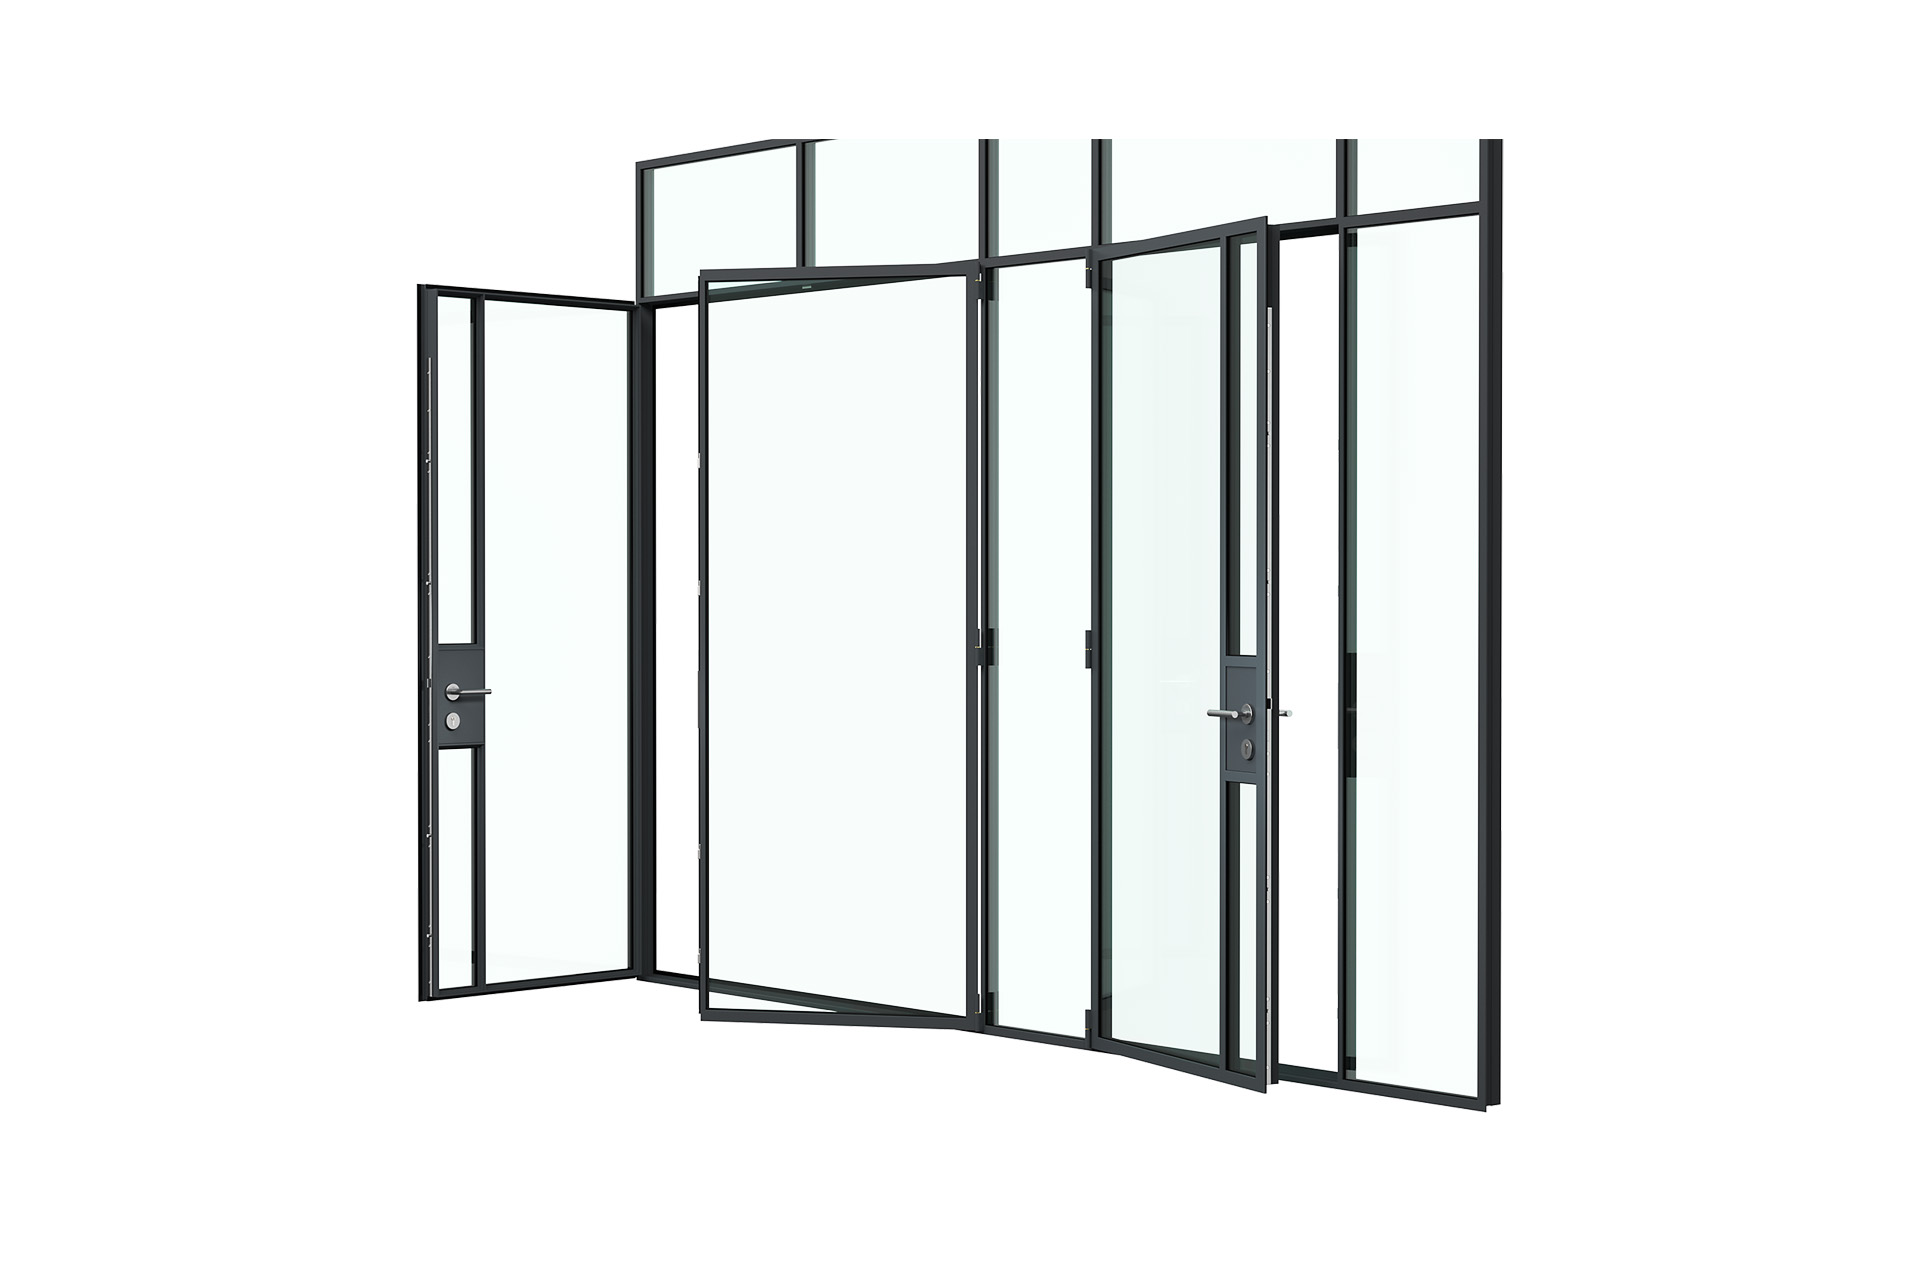 3d rendering side view of MHB steel lock case doors